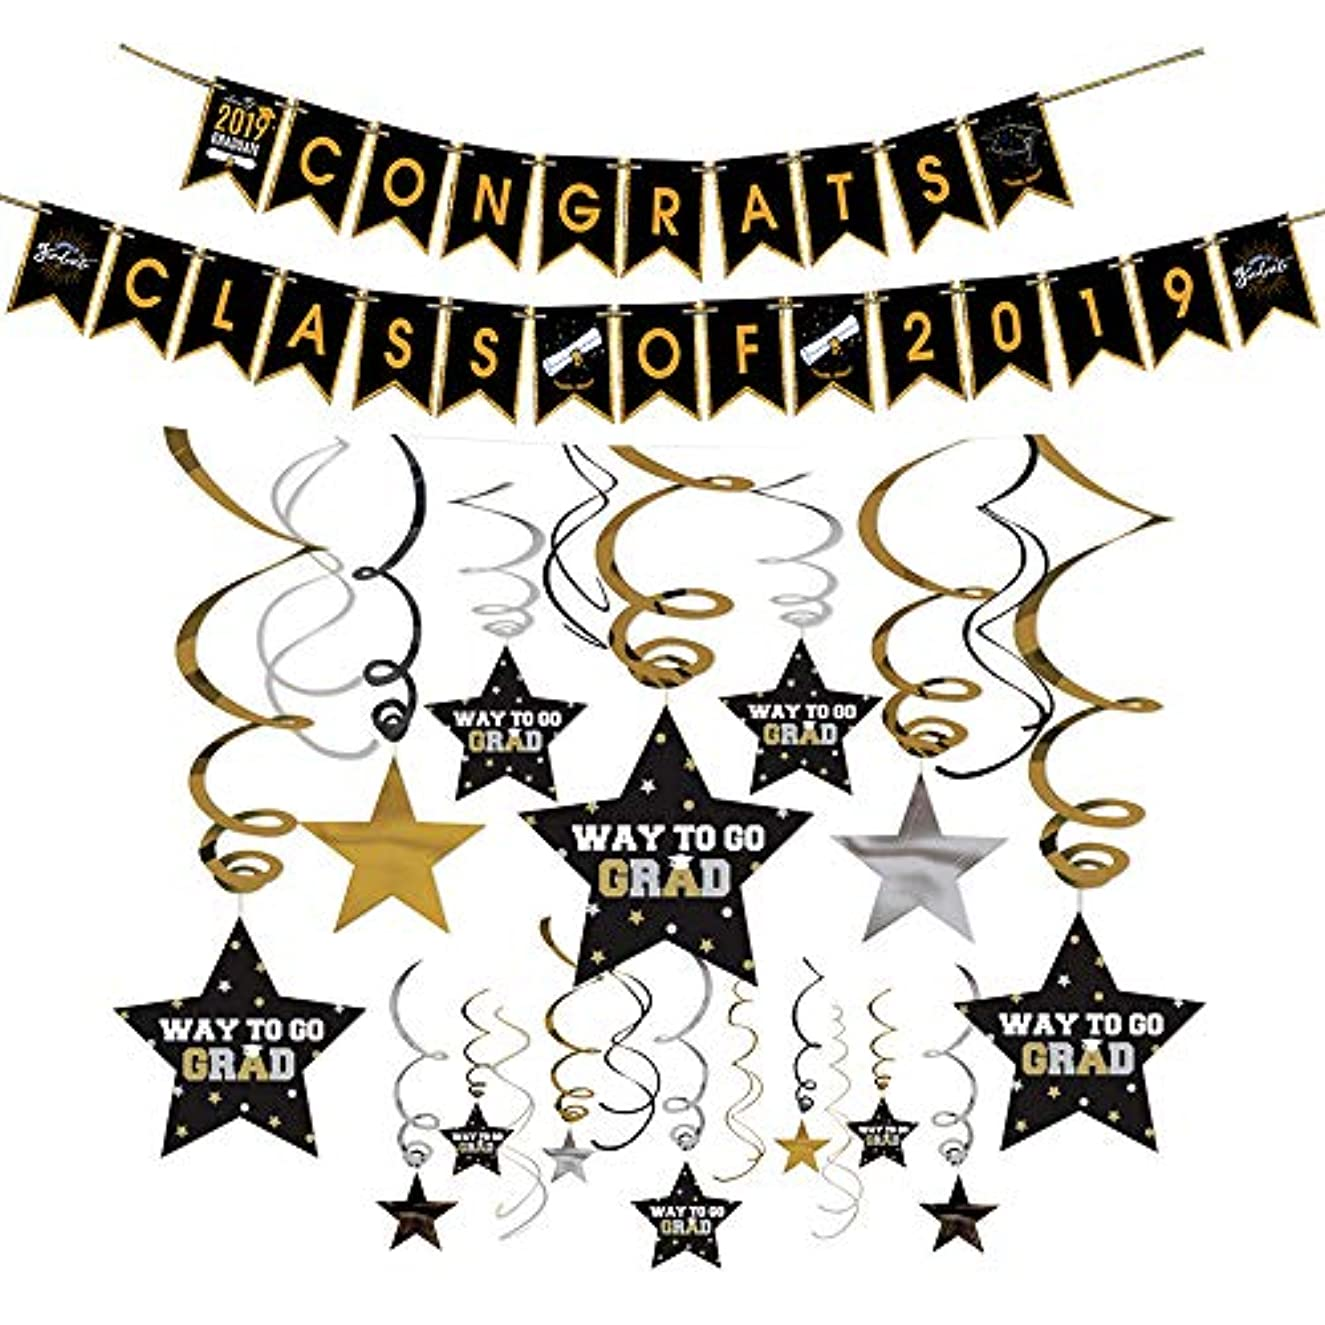 Congrats Class of 2019 Graduation Banner and Star Foil Ceiling Hanging Swirls Kit Party Streamers for Graduation Party Decorations